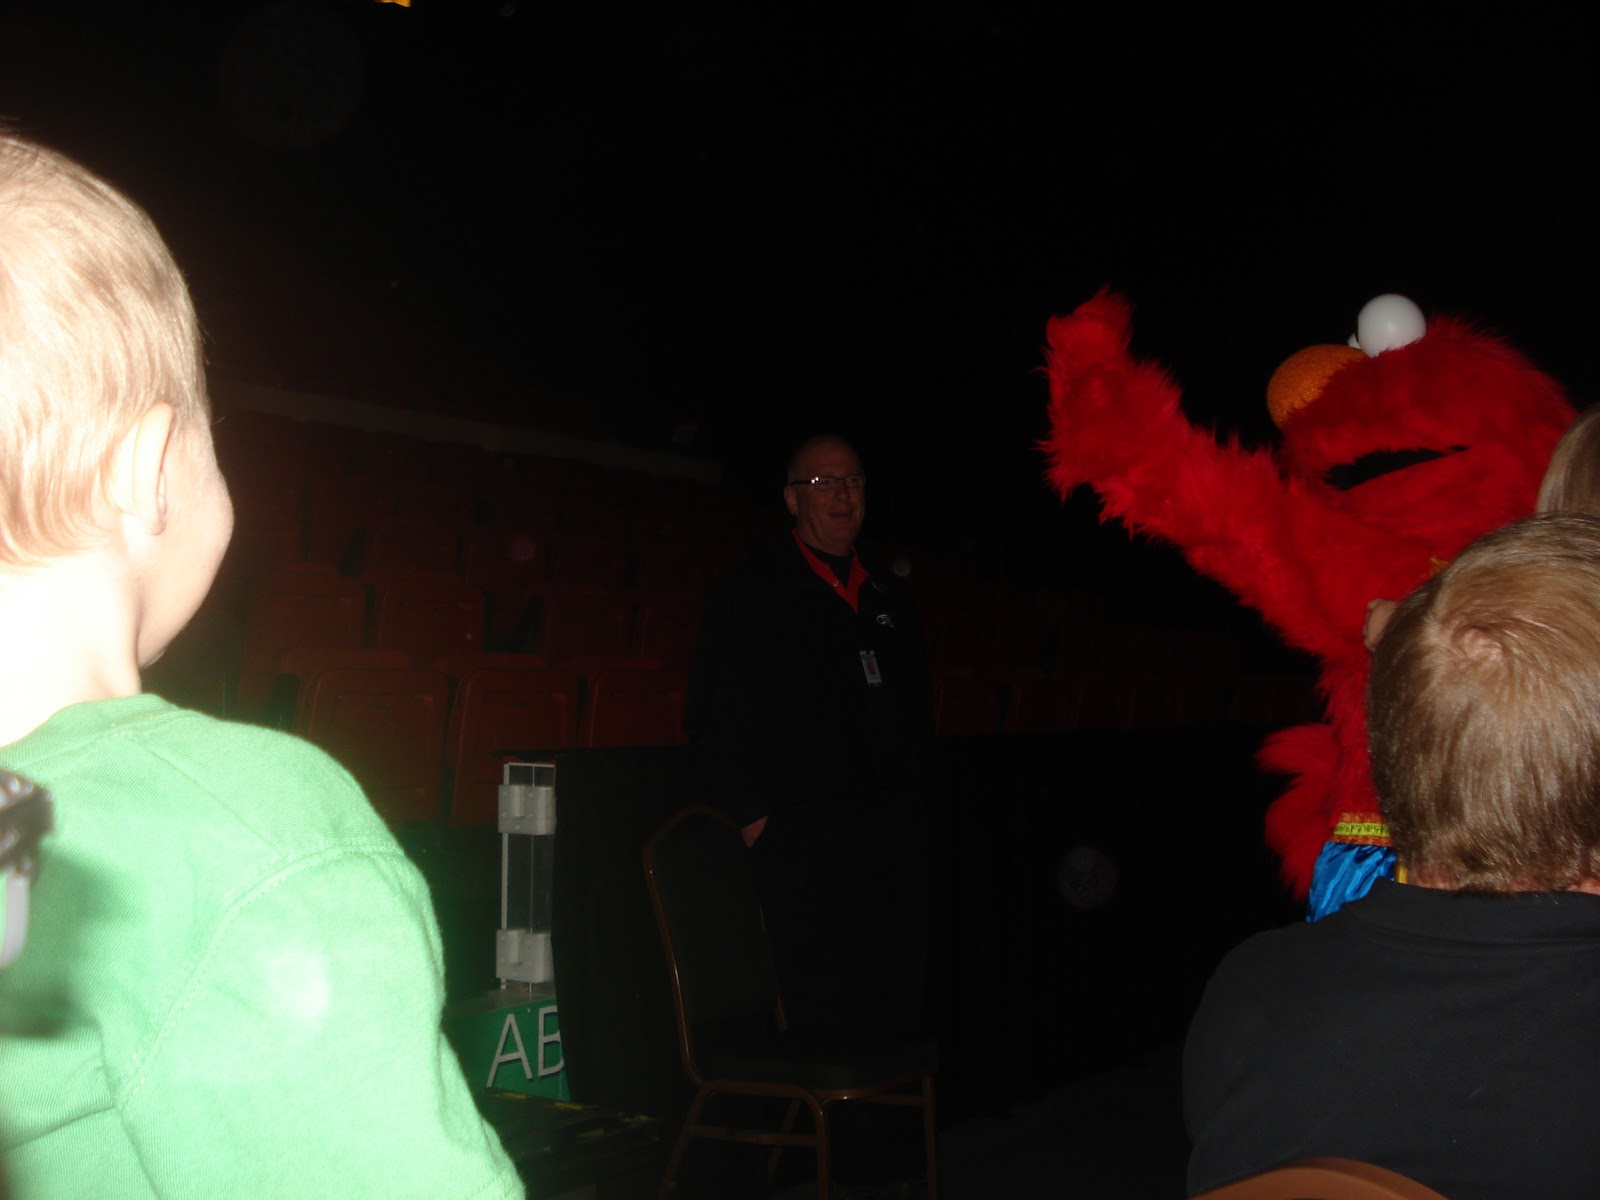 Roxys reign ends sesame street live telly monster super grover and even elmo himself i didnt have my camera ready for all of them but was able to capture a few of the meet and greets m4hsunfo